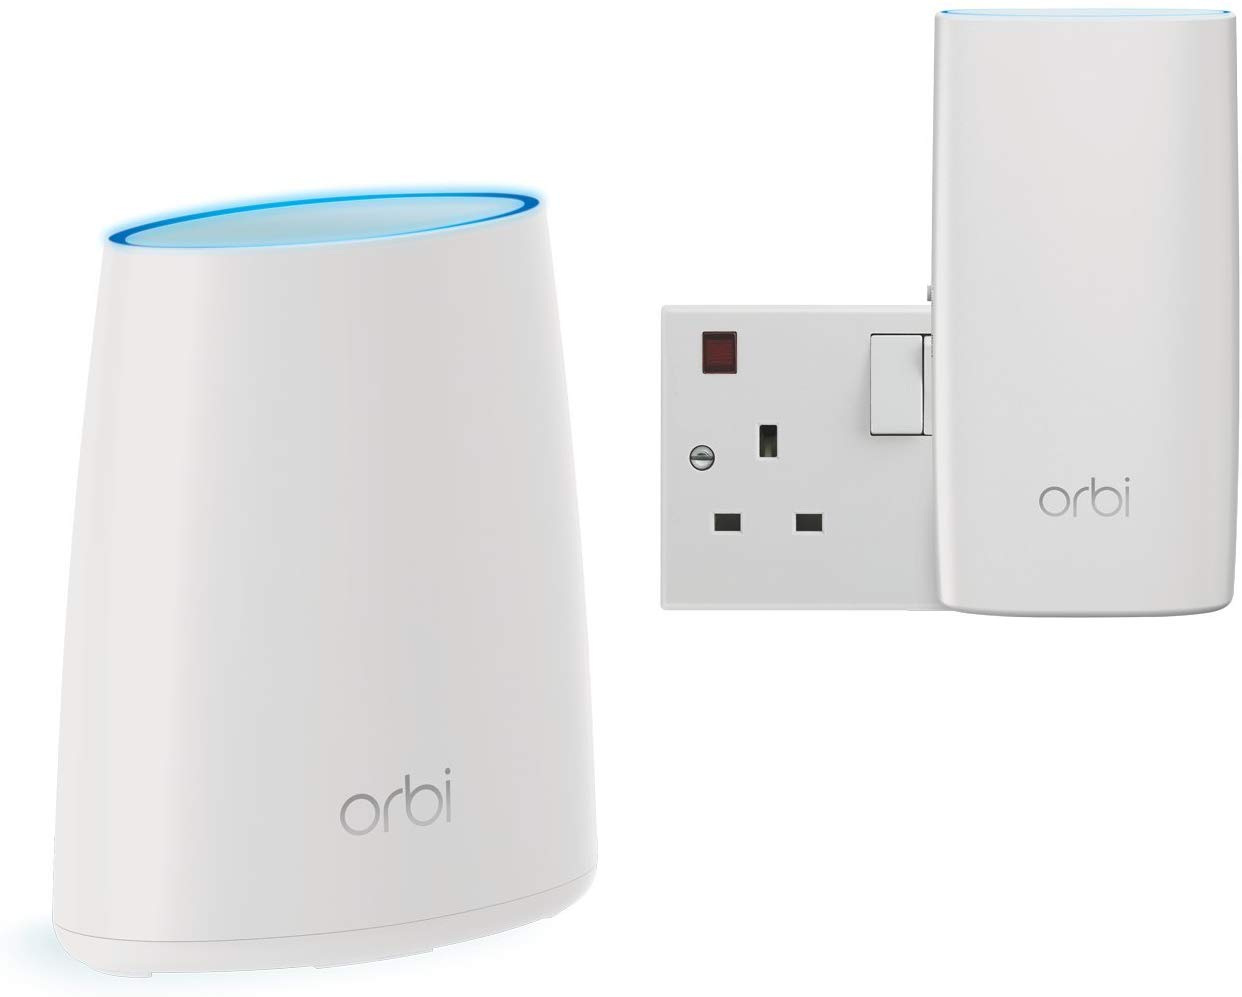 NETGEAR RBK30 Orbi System (Router and Satellite), upto 3000 sq ft Coverage